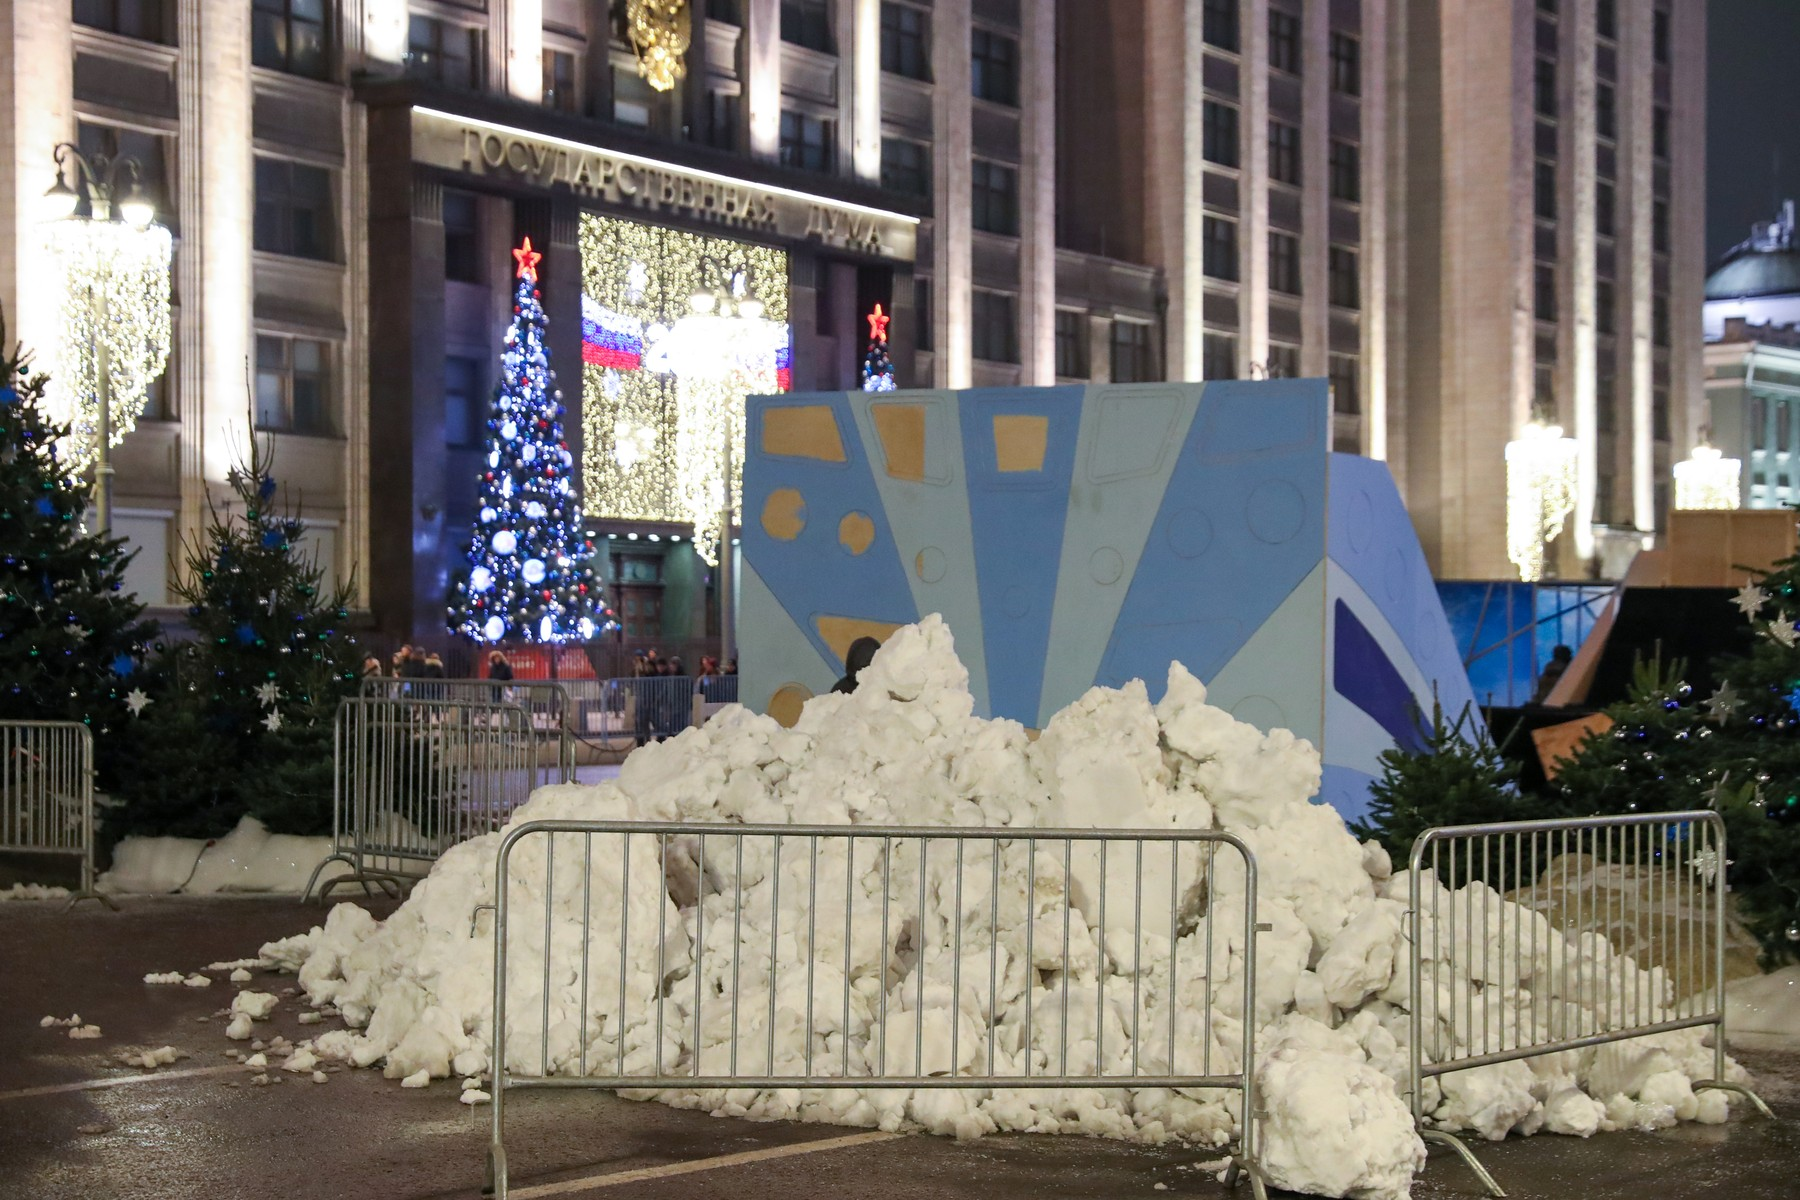 MOSCOW, RUSSIA - DECEMBER 29, 2019: Artificial snow in Tverskaya Street. Vyacheslav Prokofyev/TASS, Image: 490264820, License: Rights-managed, Restrictions: , Model Release: no, Credit line: Vyacheslav Prokofyev / TASS / Profimedia